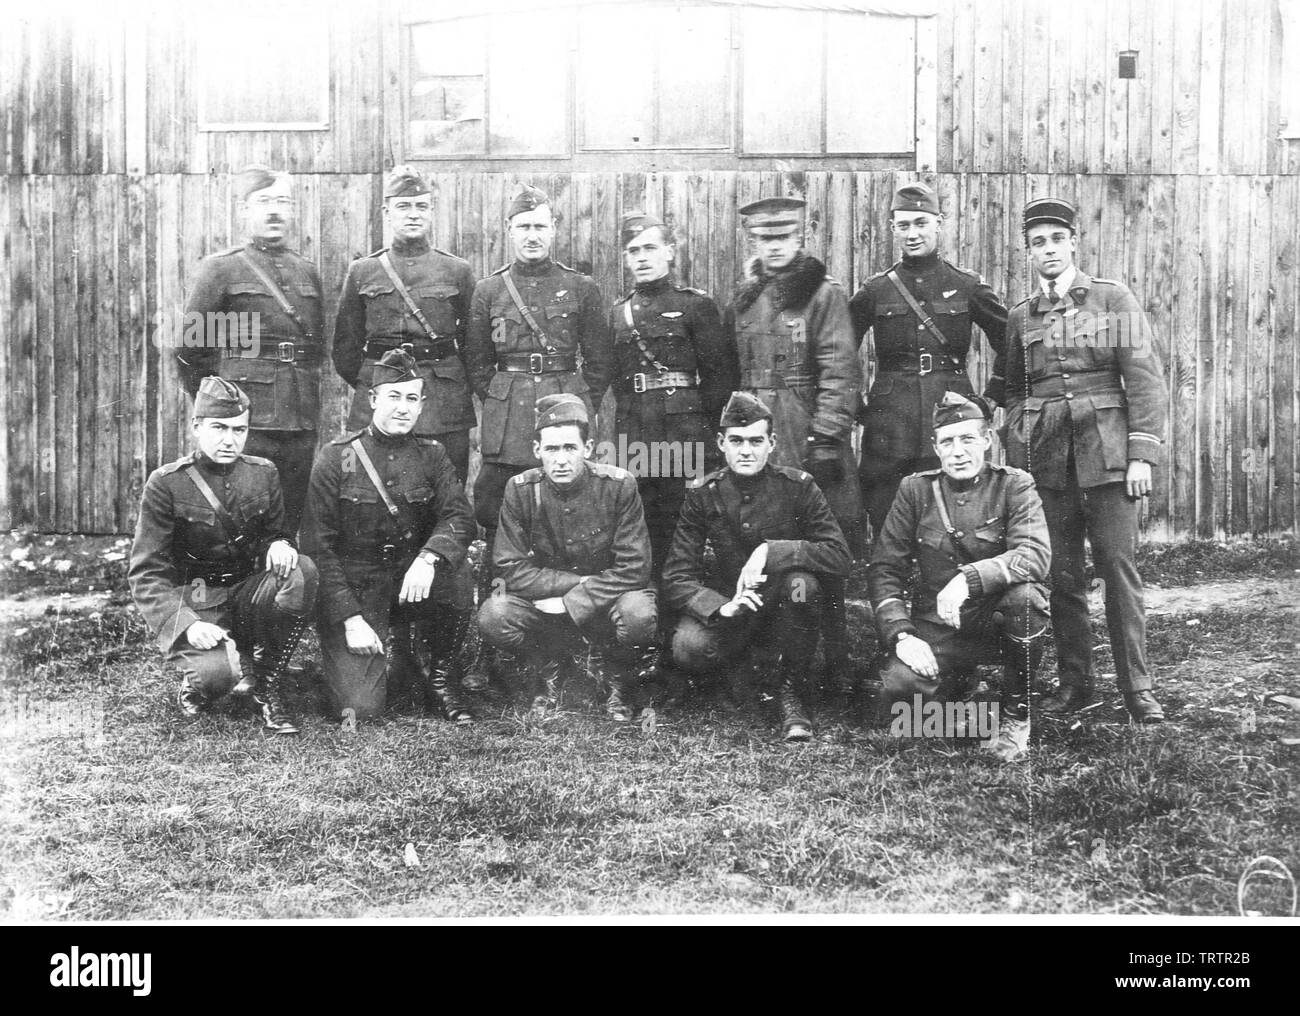 'English: 12th Aero Squadron - Officers Gengault Aerodrome, Toul, France September 1918; 1918; US National Archives, Gorrell's History of the American - Stock Image